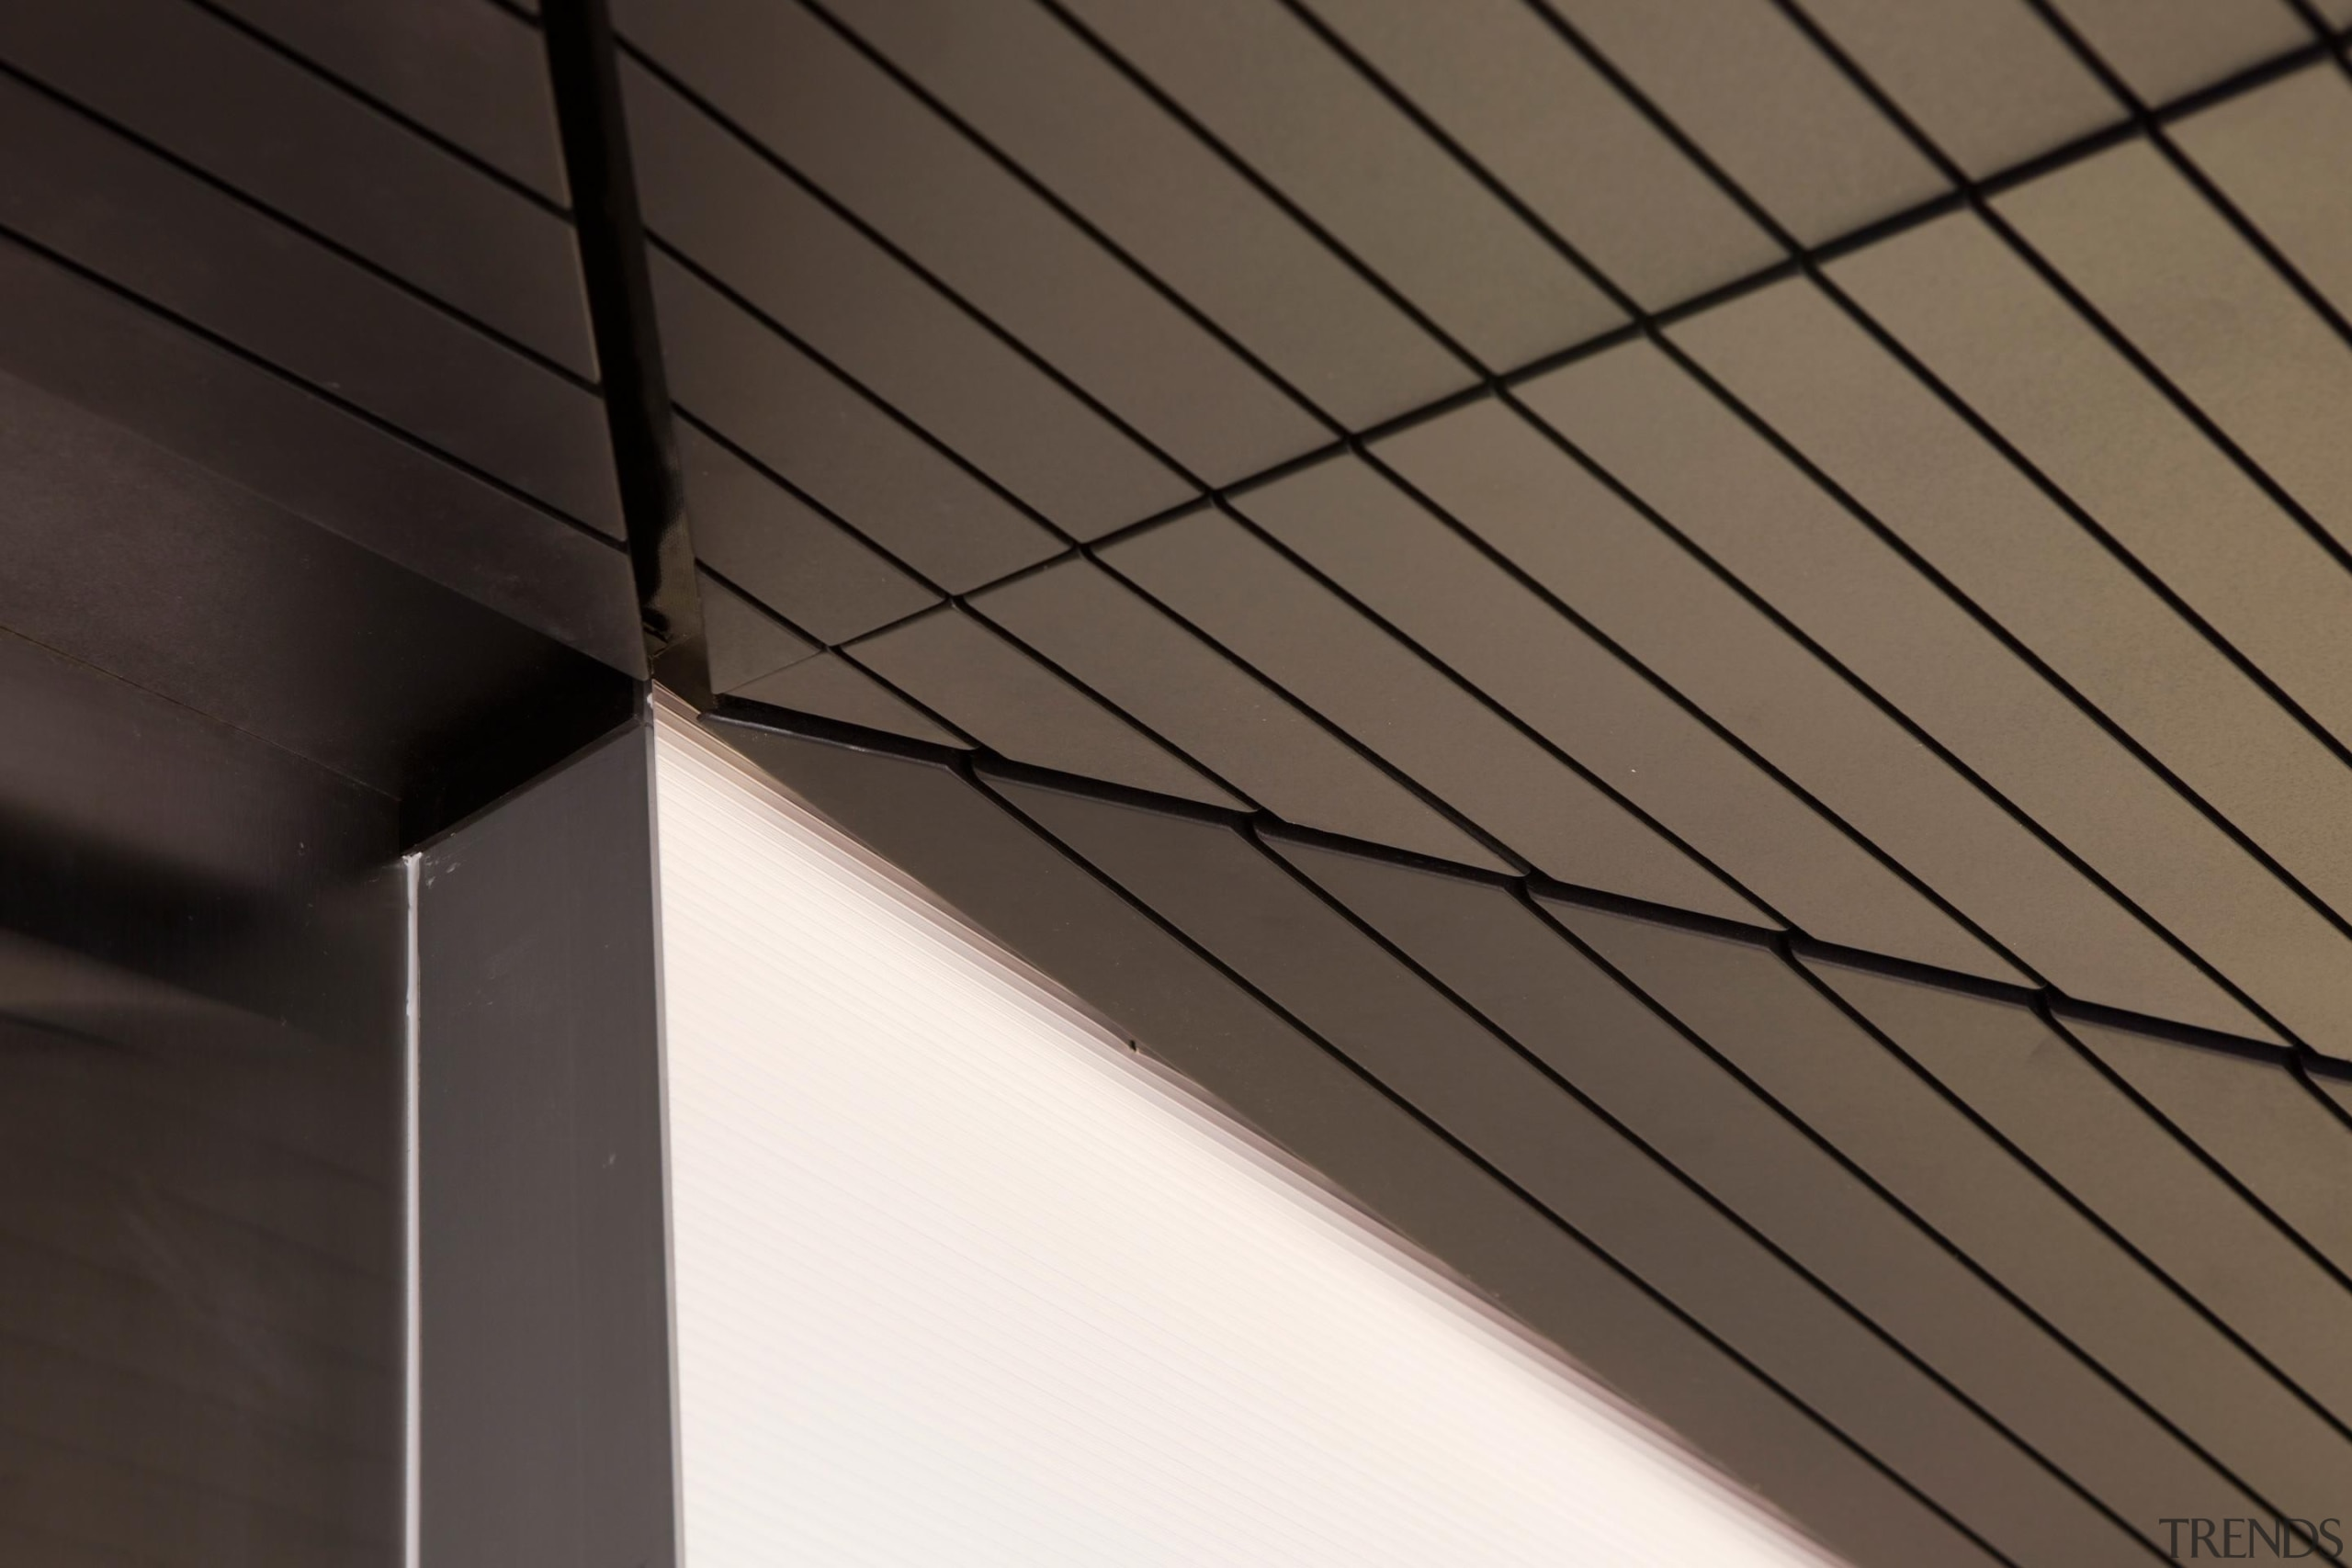 Decortech groved panels form a triangulated ceiling form angle, architecture, ceiling, daylighting, facade, light, line, roof, structure, wall, wood, black, gray